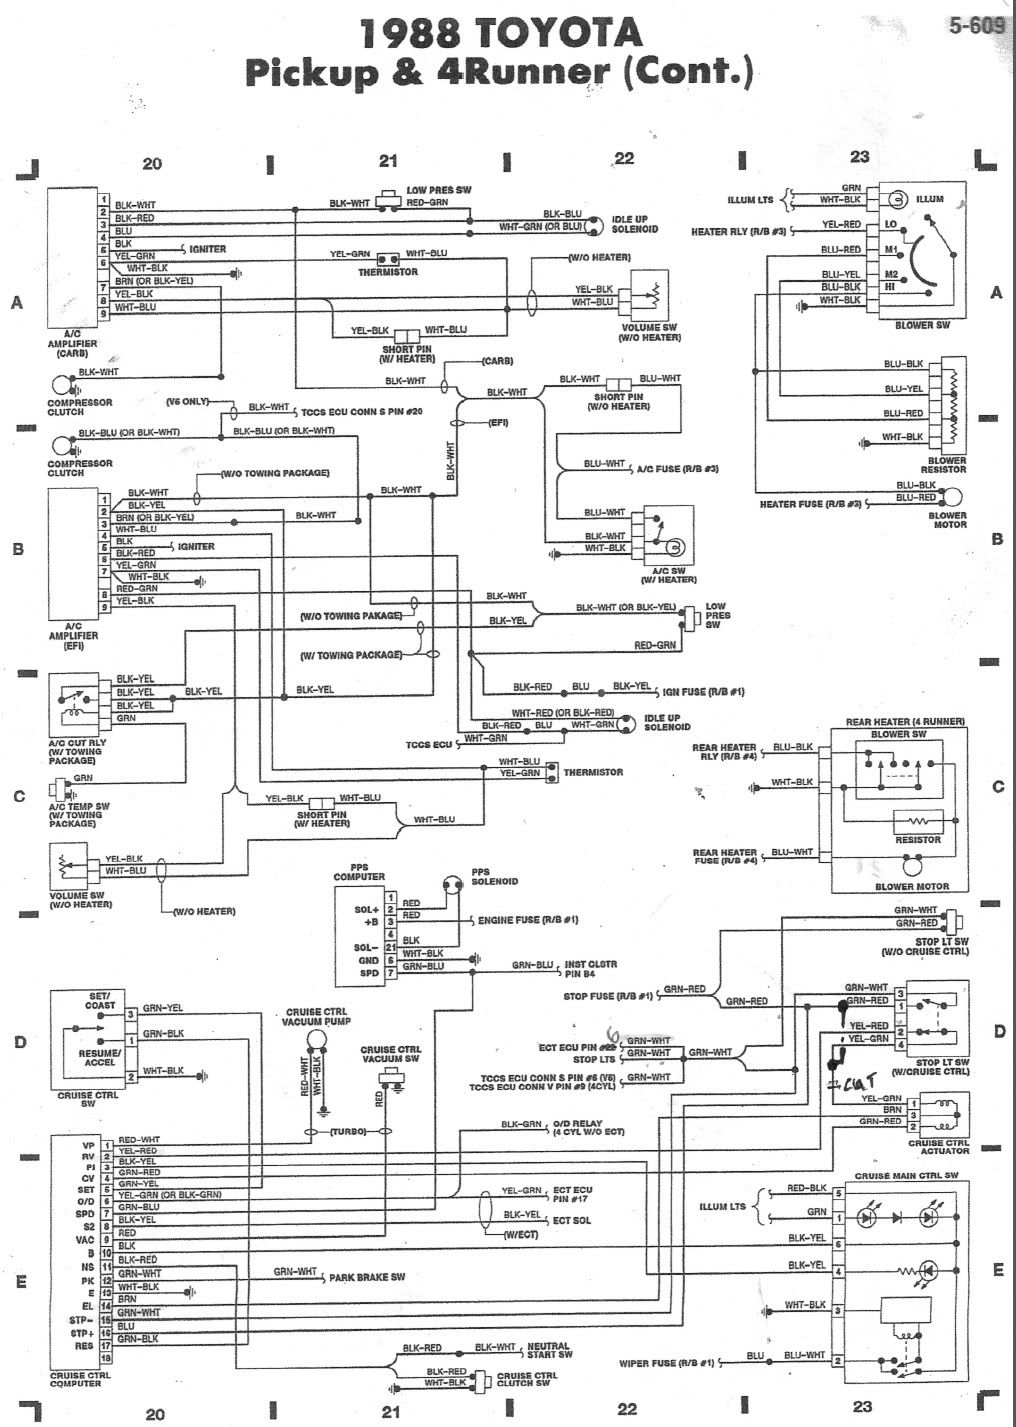 Toyota Truck Heater Wiring Diagram Toyota Wiring Diagrams Color Code